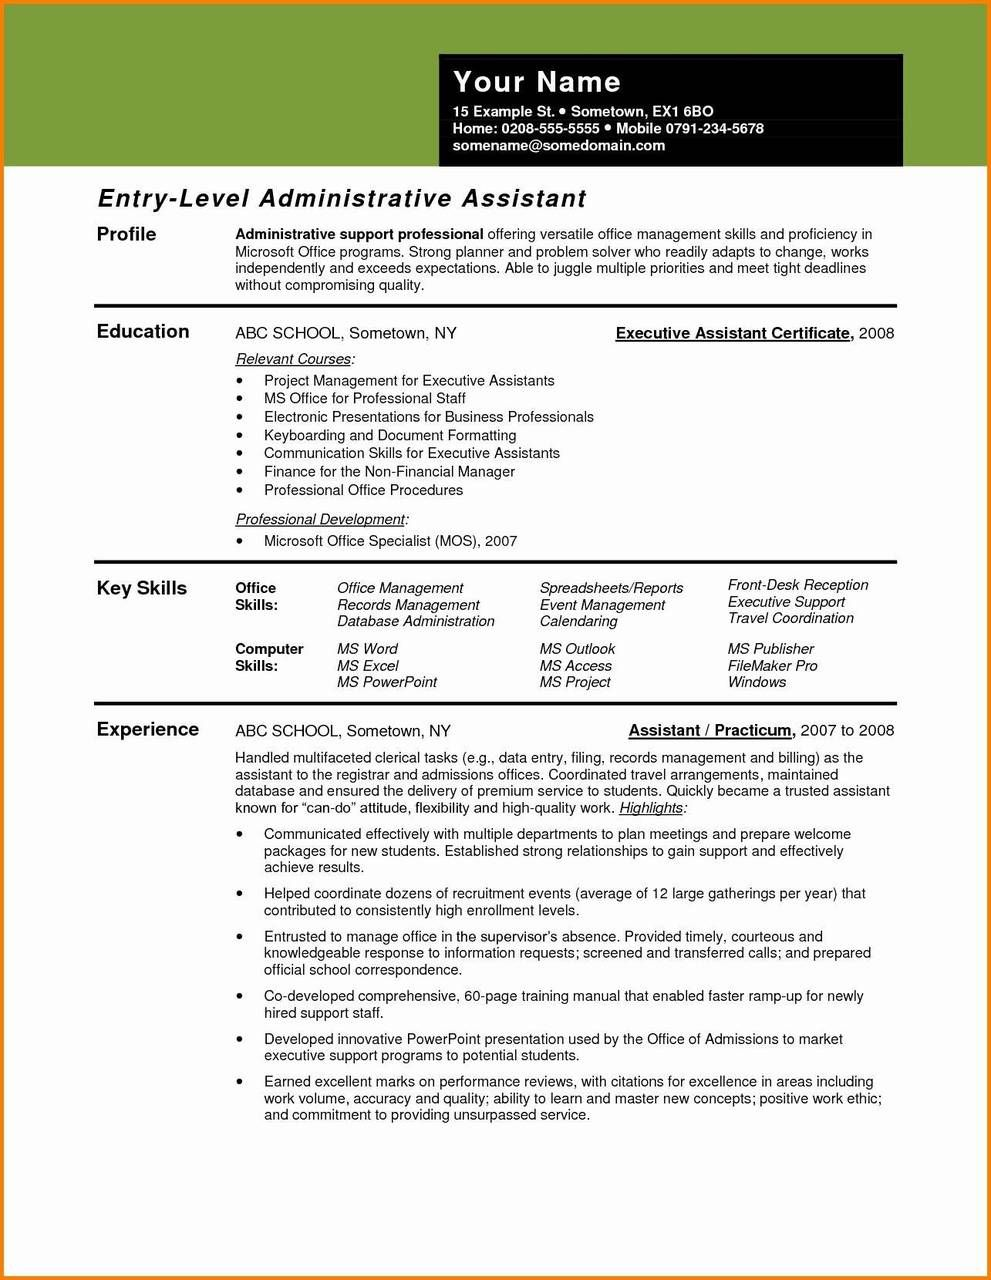 Office Administrative Assistant Resume Sample, Office